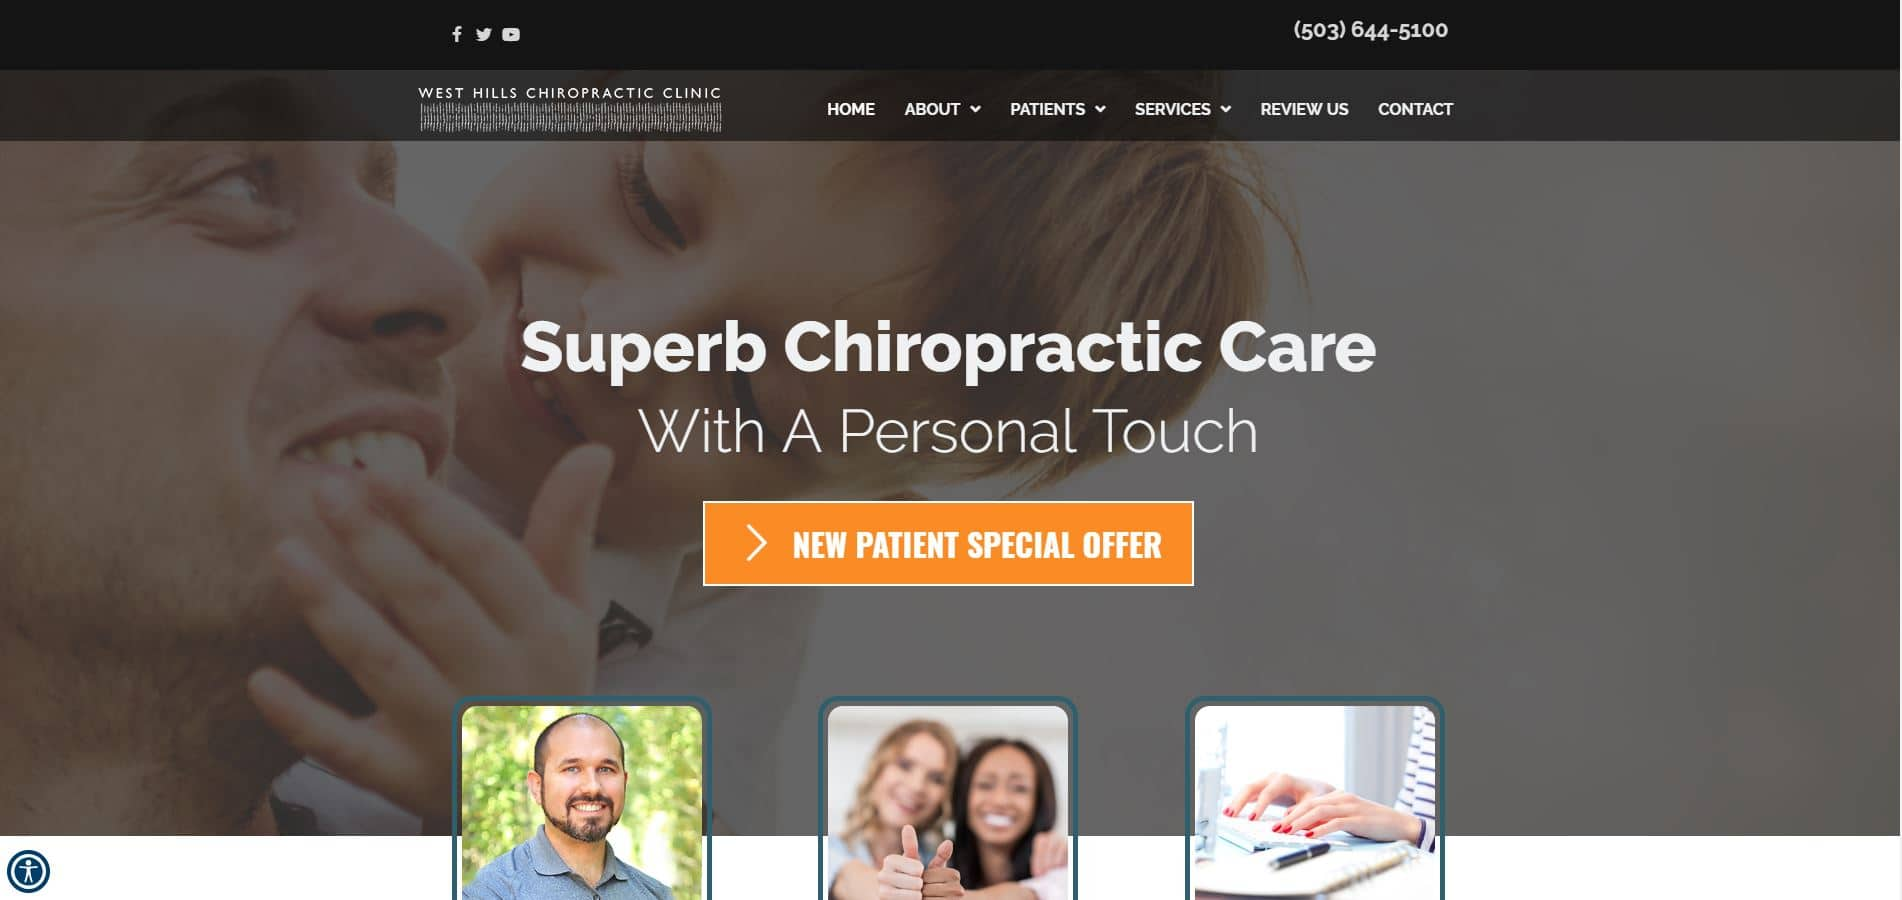 Chiropractor Portland OR West Hills Chiropractic Clinic